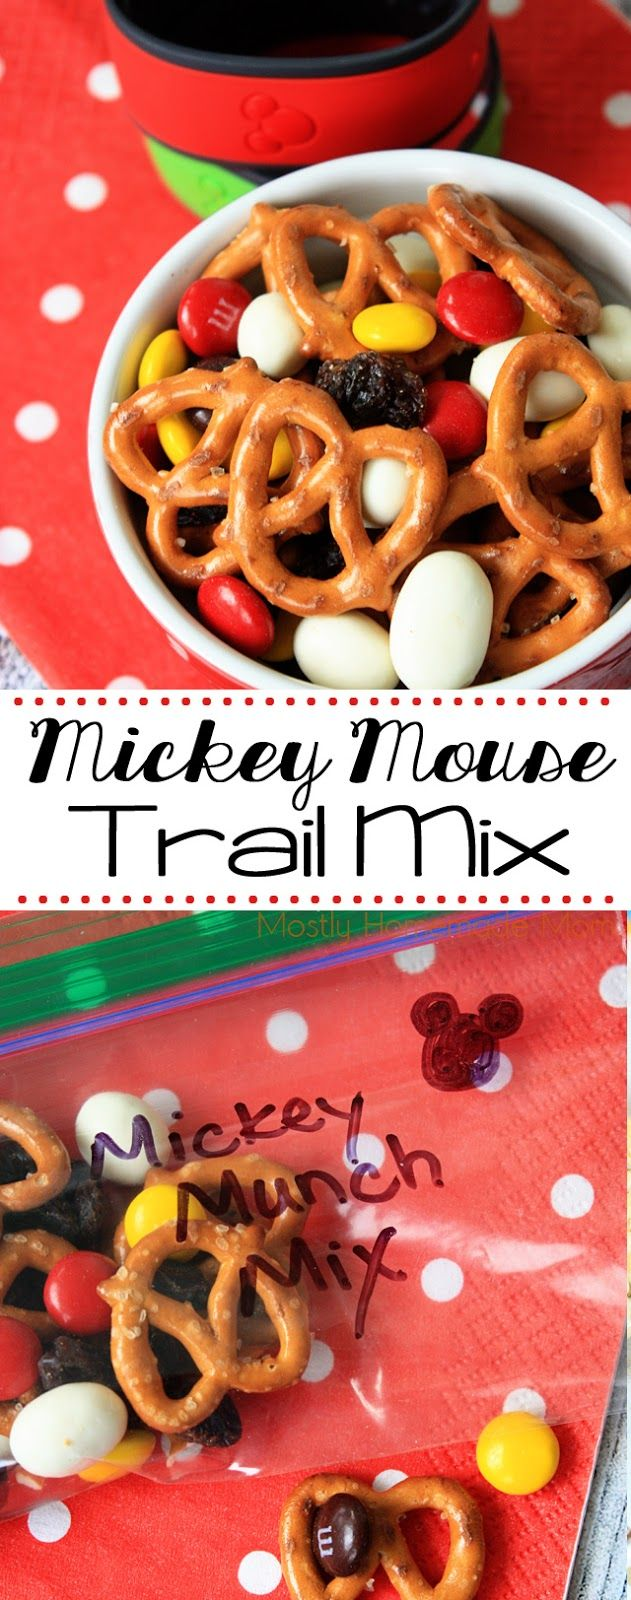 Mickey Mouse Trail Mix - absolutely adorable! Pretzels, yogurt covered raisins, and M&M's - this munch mix is perfect for your kids to snack on during their first trip to Disney World!